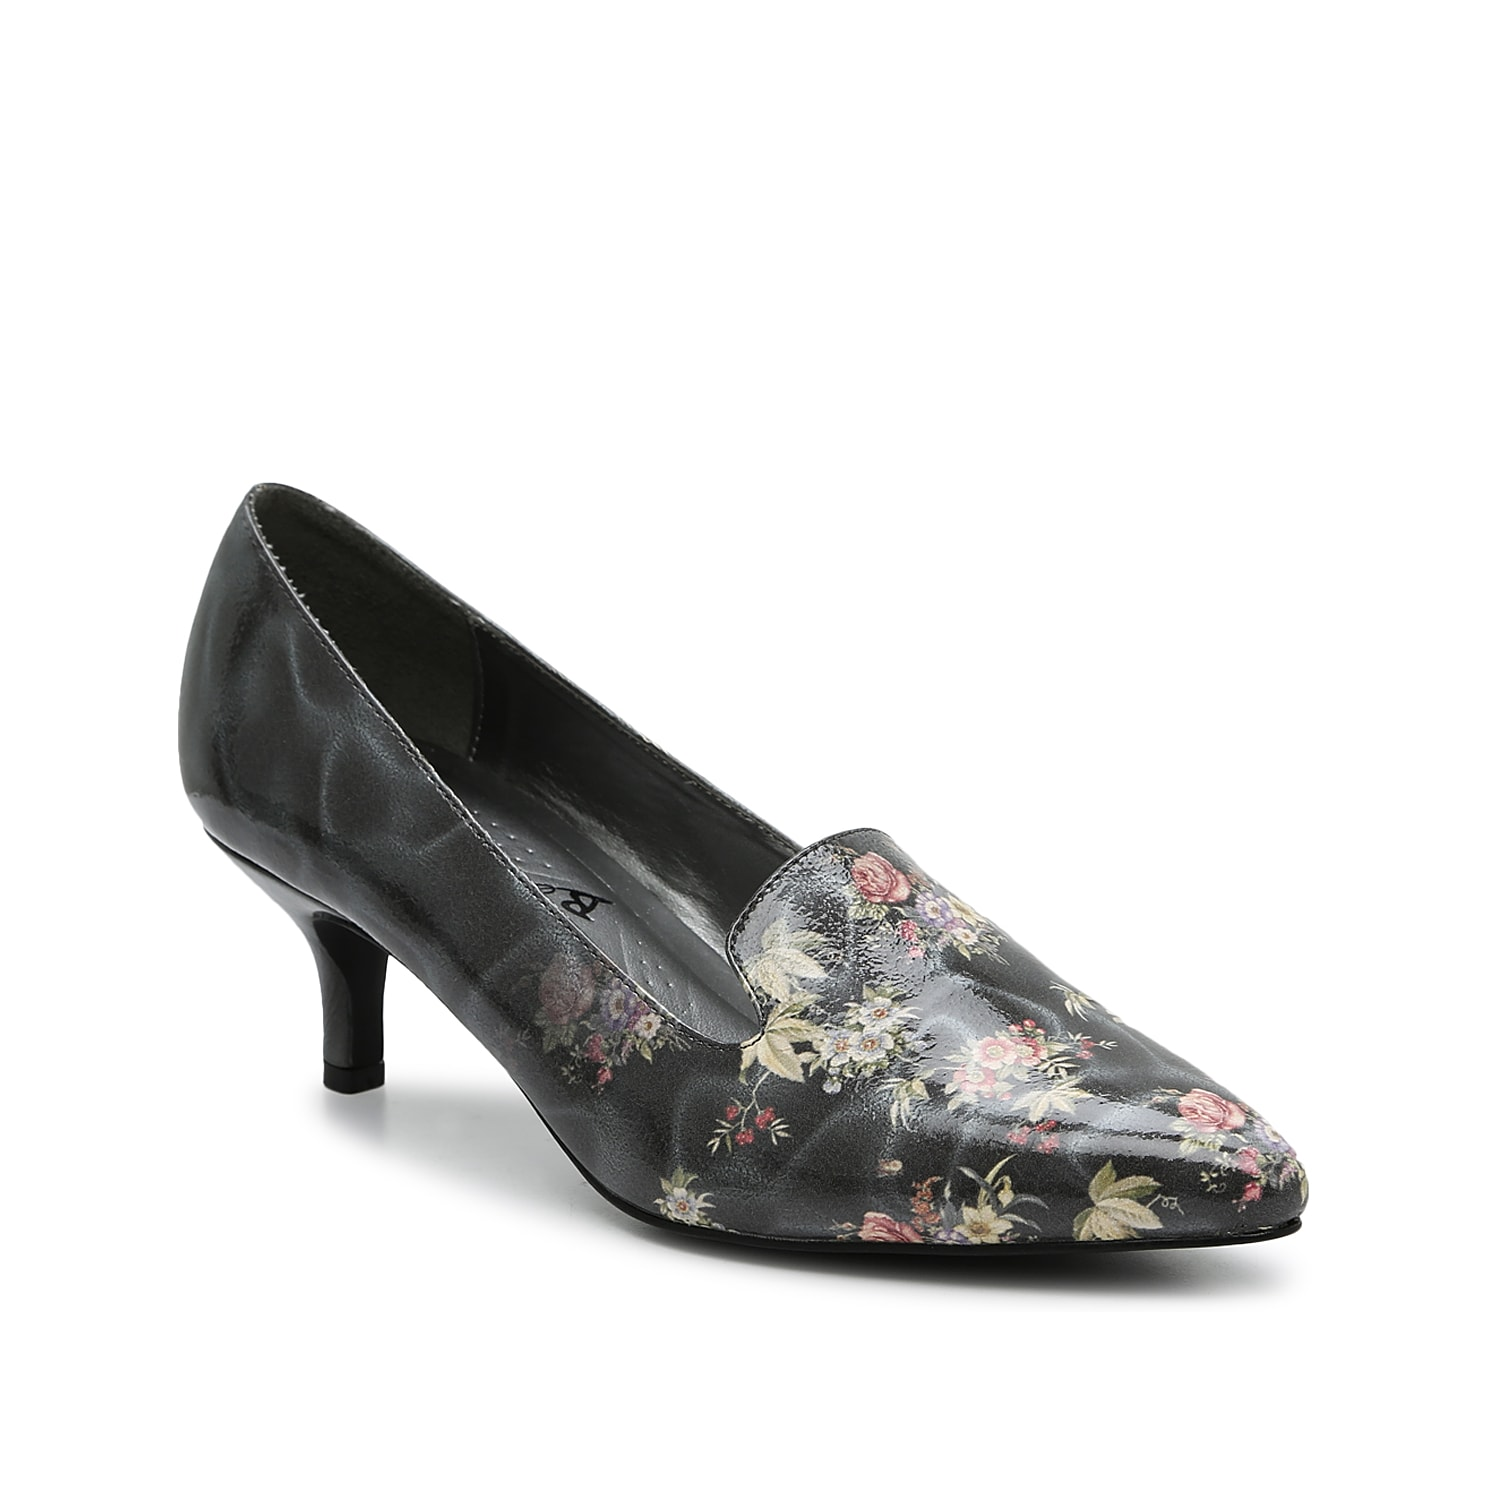 The Bobcat pump from Bellini adds a sassy side to work or weekend ensembles. This floral print pair features a loafer-inspired vamp and a kitten heel for classic appeal.